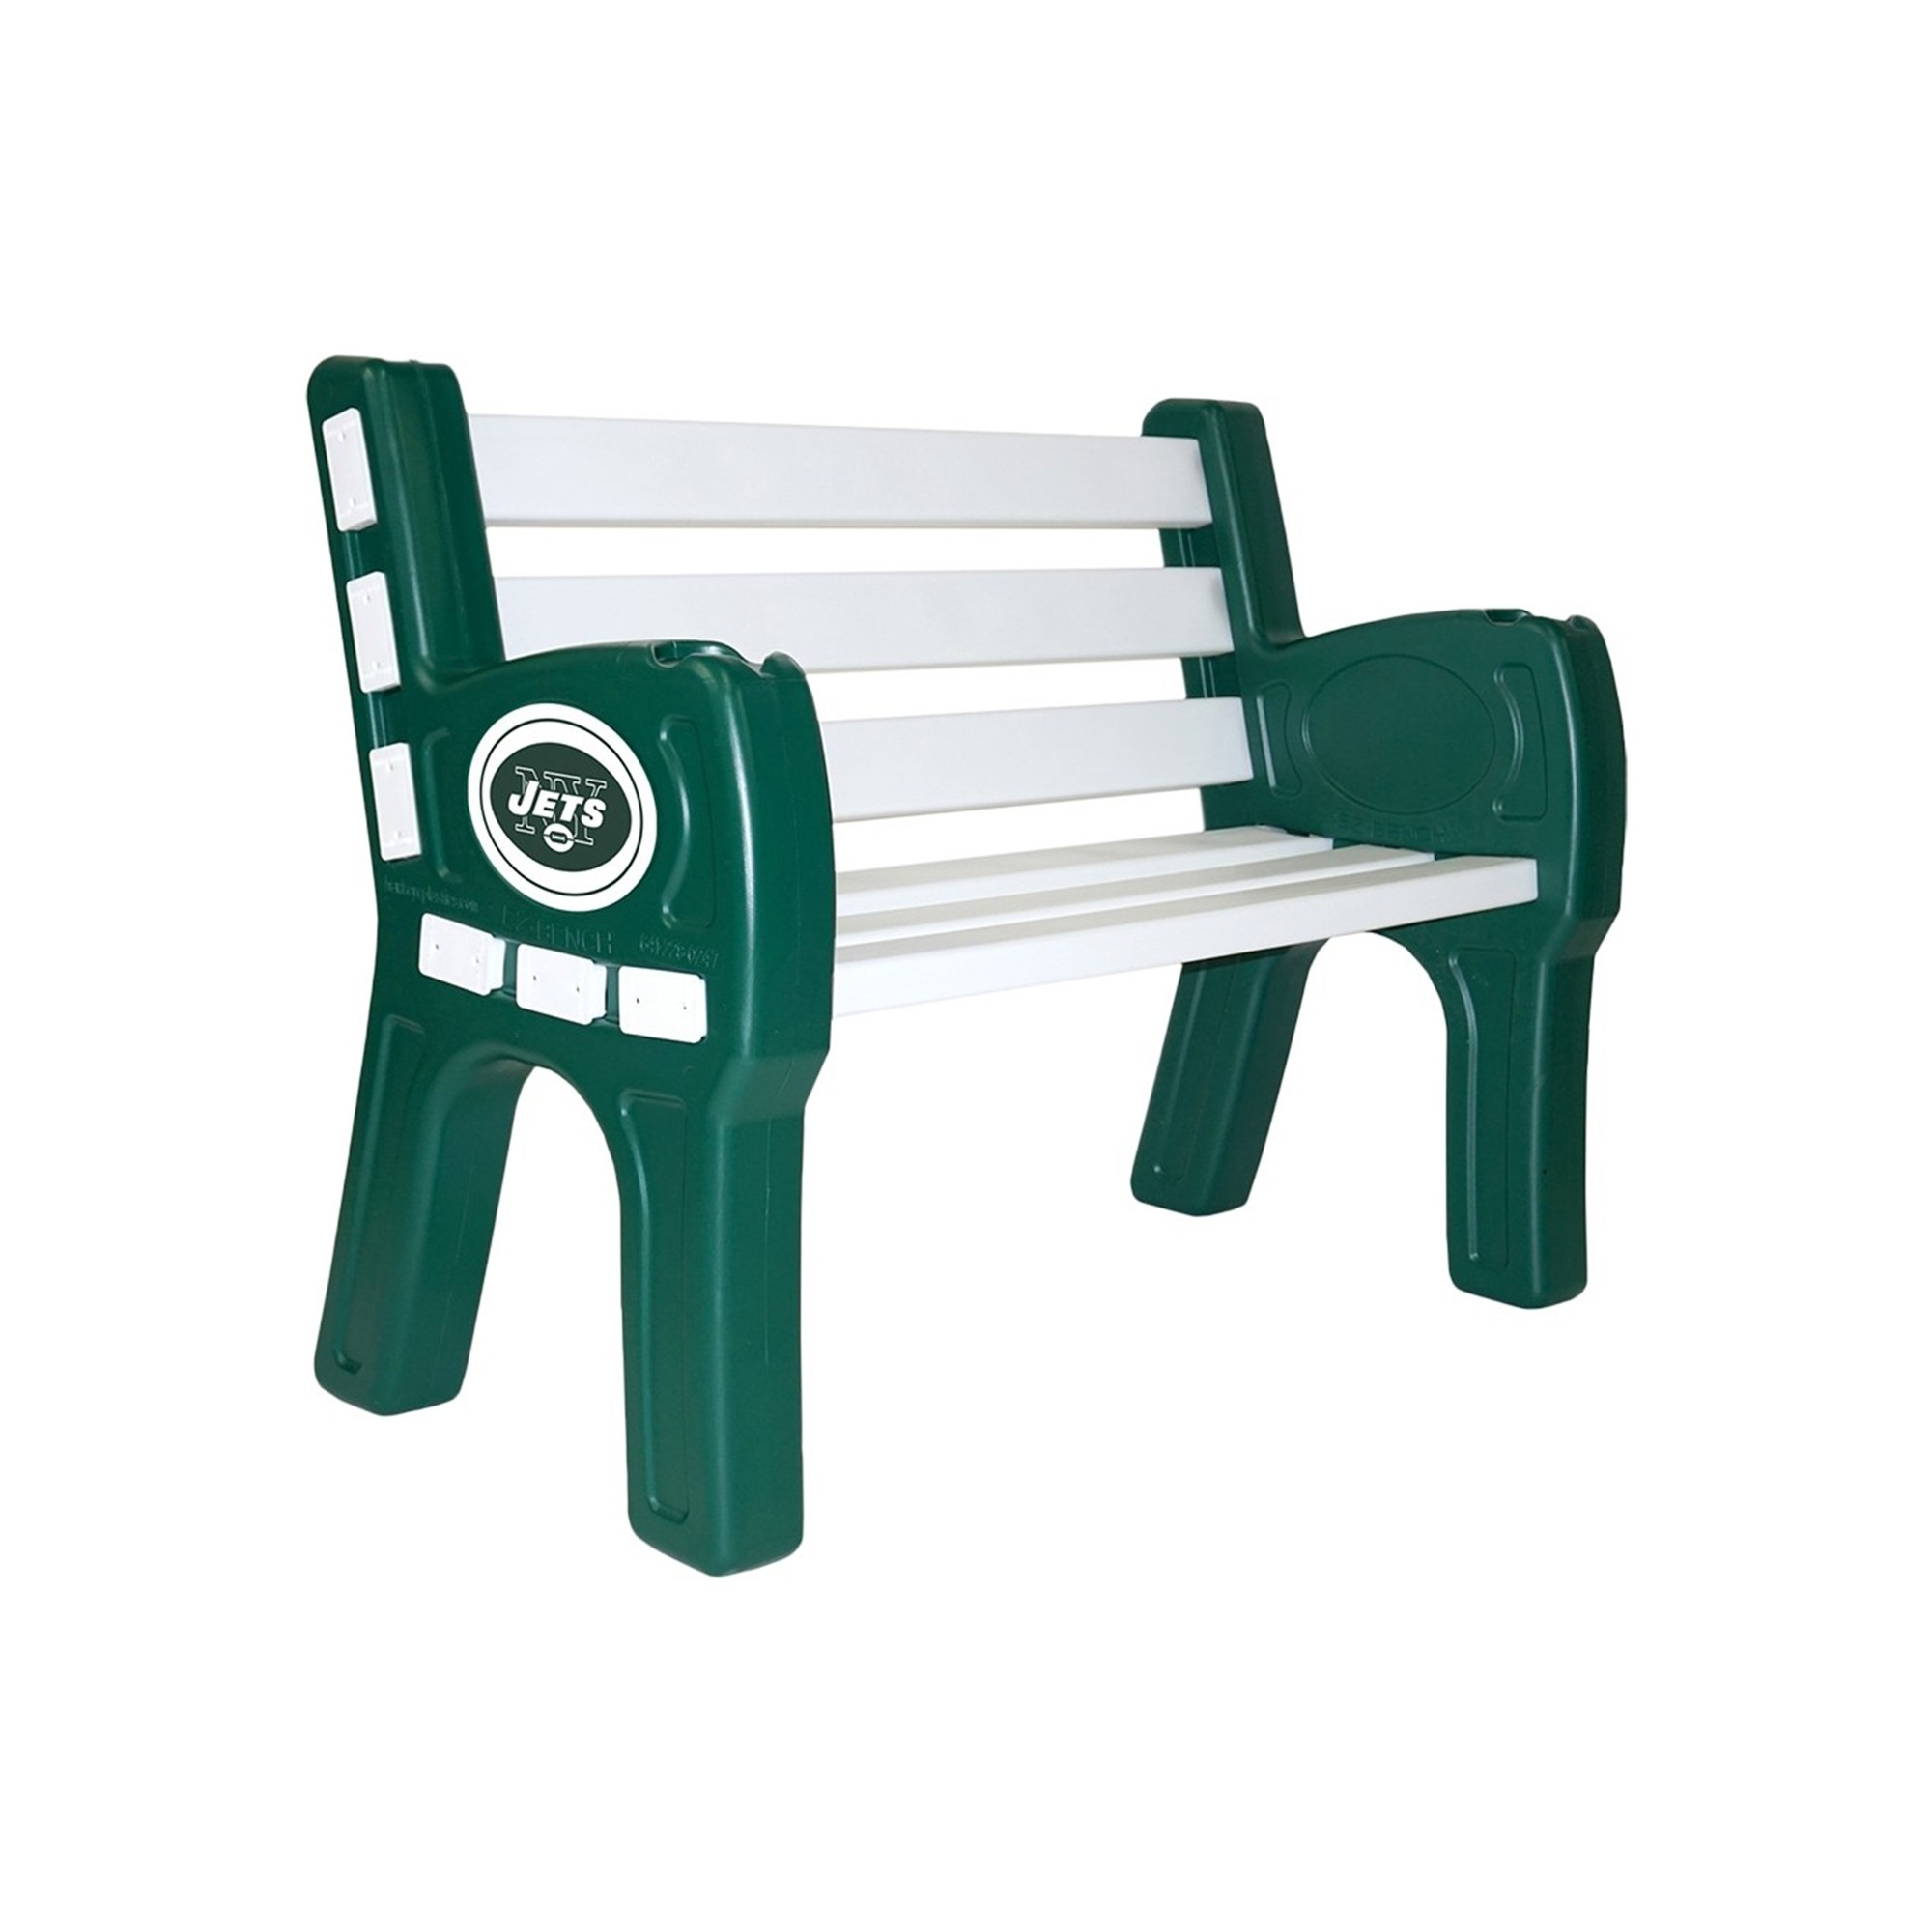 Nfl Football New York Jets Plastic Parking Sign - 188-1012 - New York Jets Park Bench 188-1012